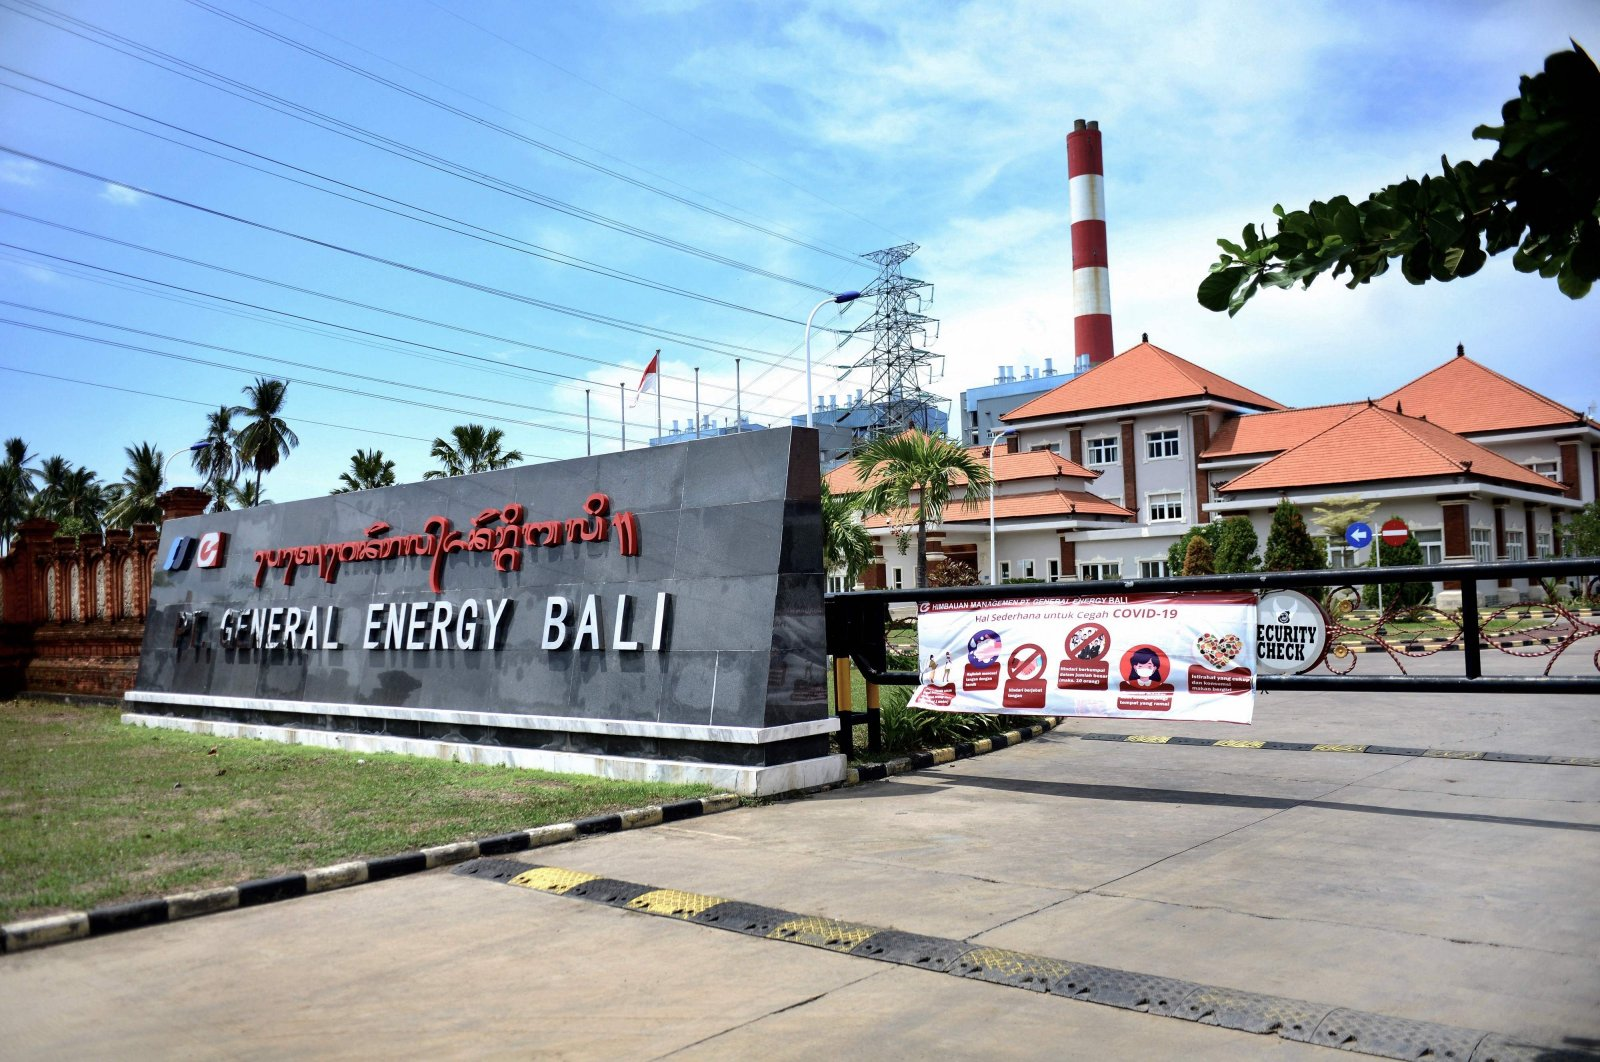 The Celukan Bawang 2 power plant, funded by China, in Singaraja on Indonesia's resort island of Bali, Oct. 29, 2020. (AFP Photo)